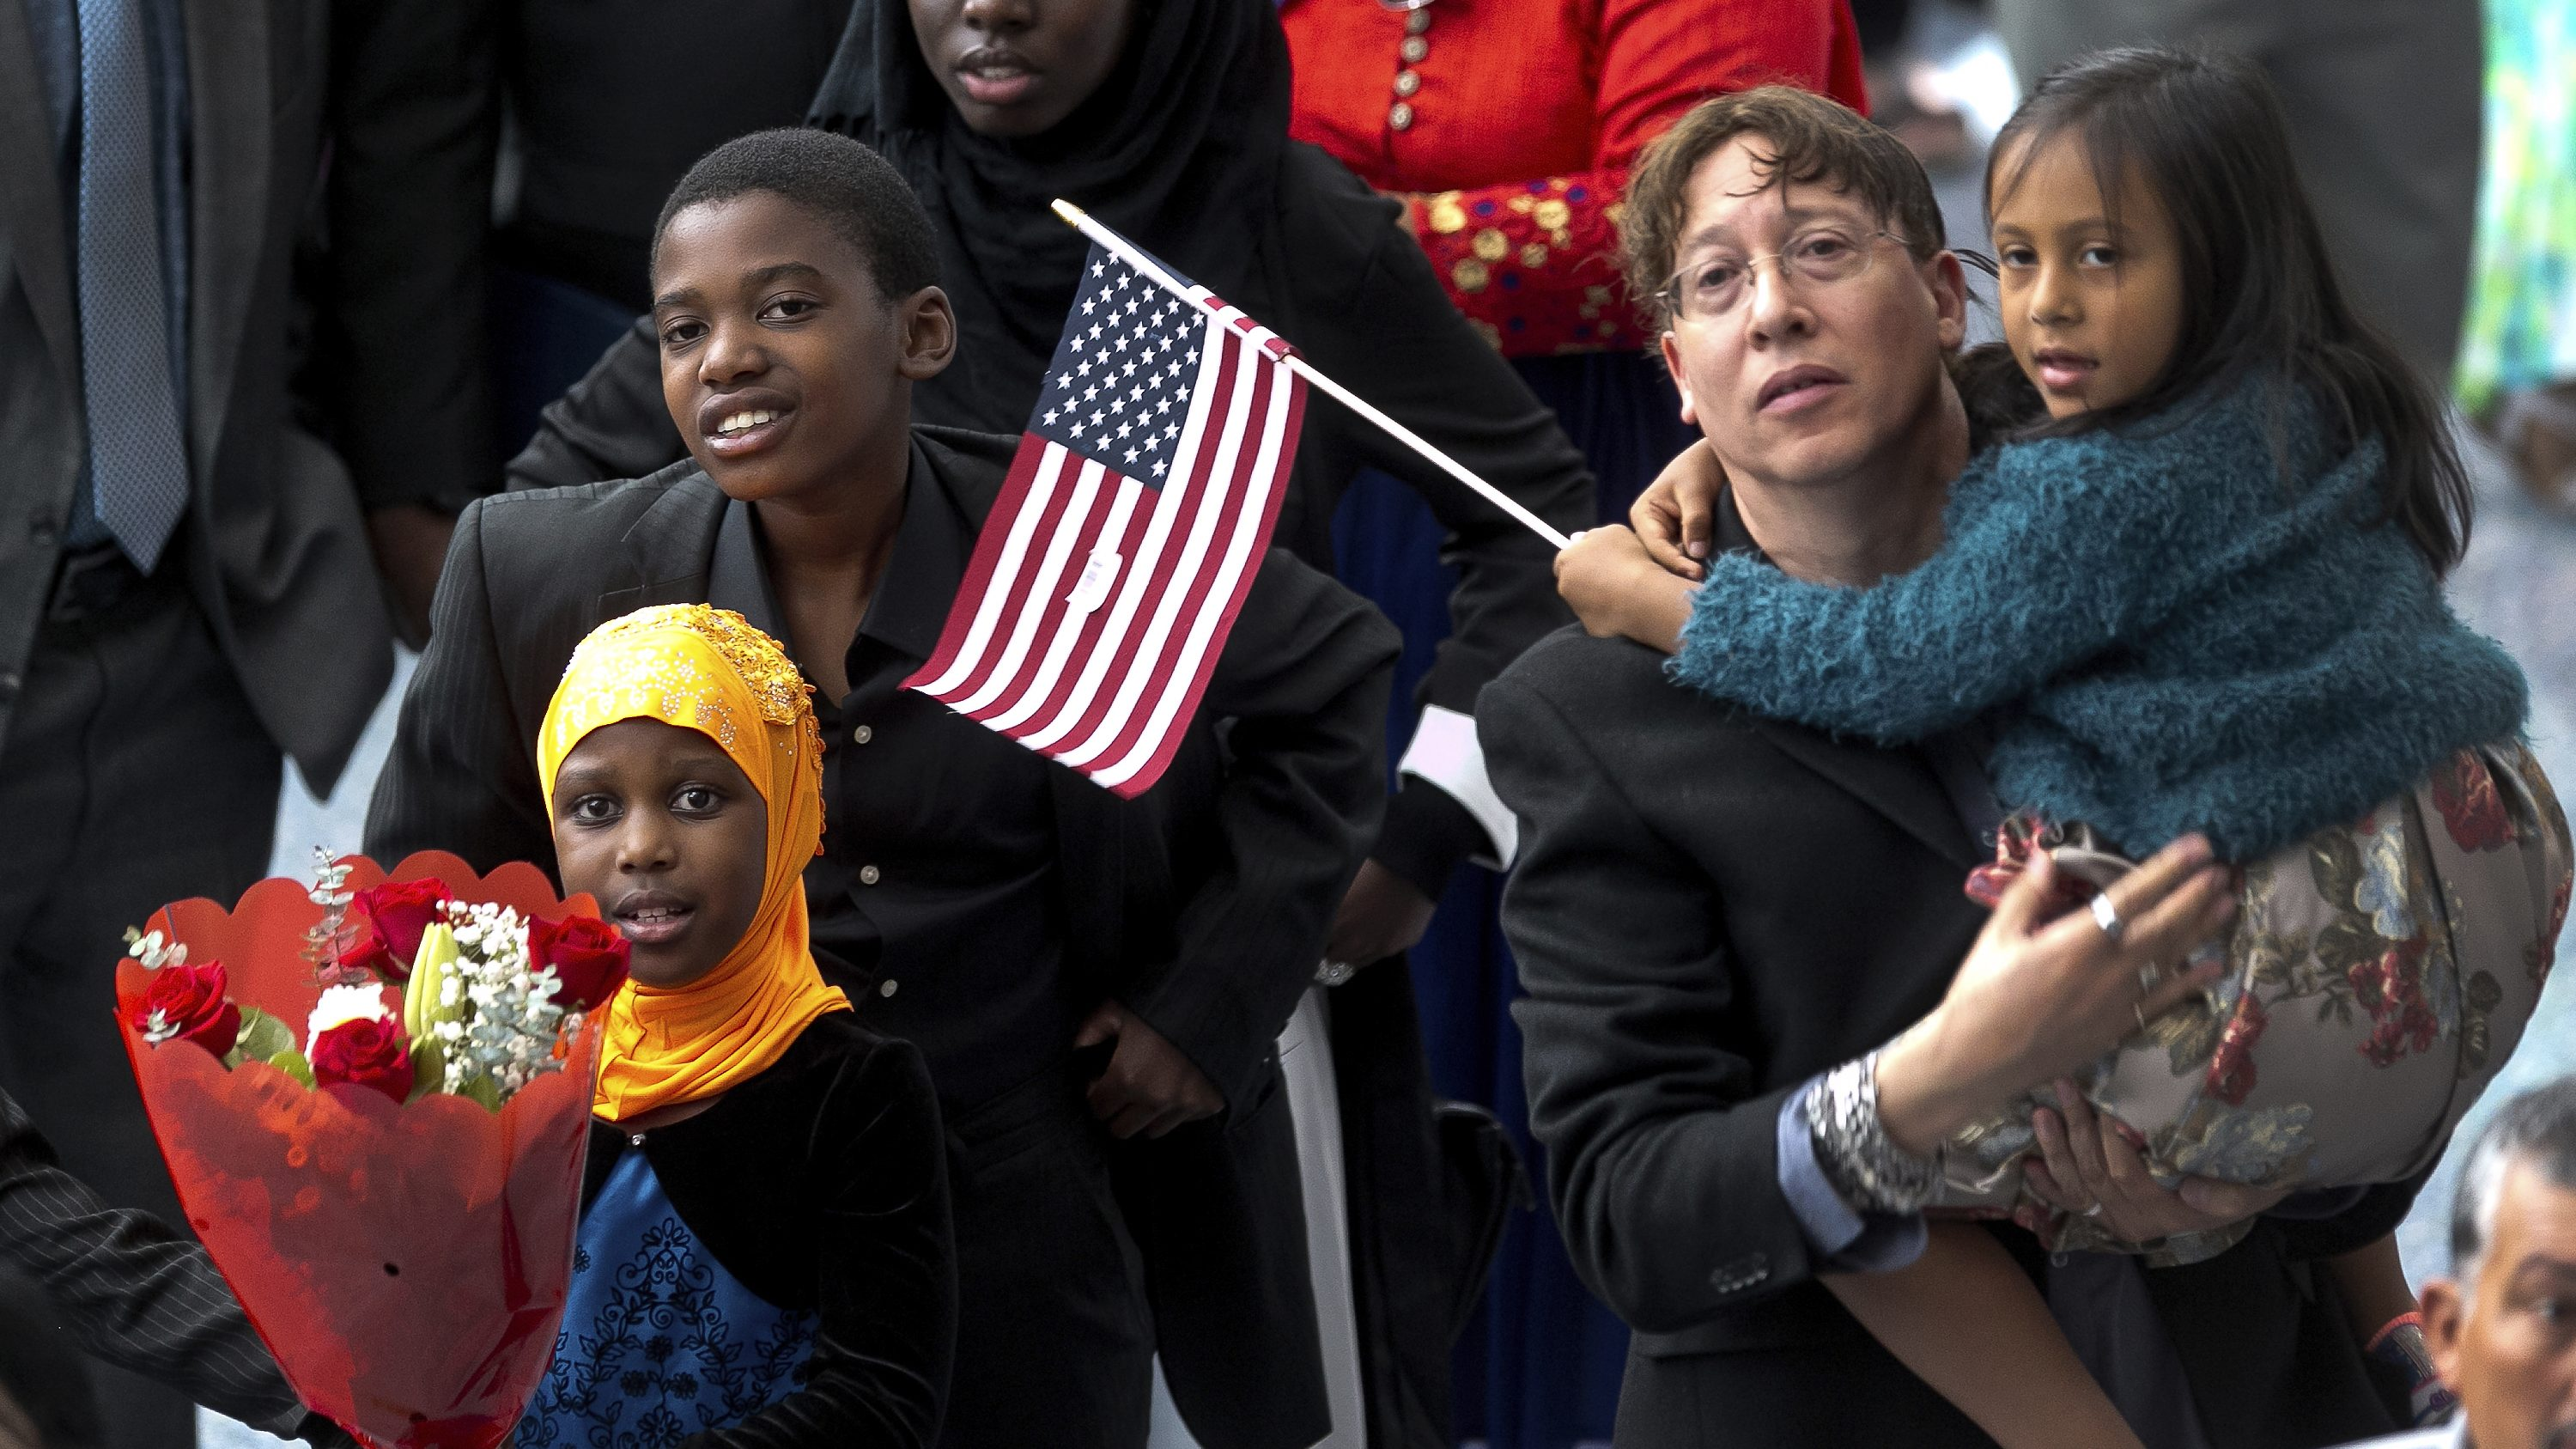 naturalization ceremonies at a U.S. Citizenship and Immigration Services